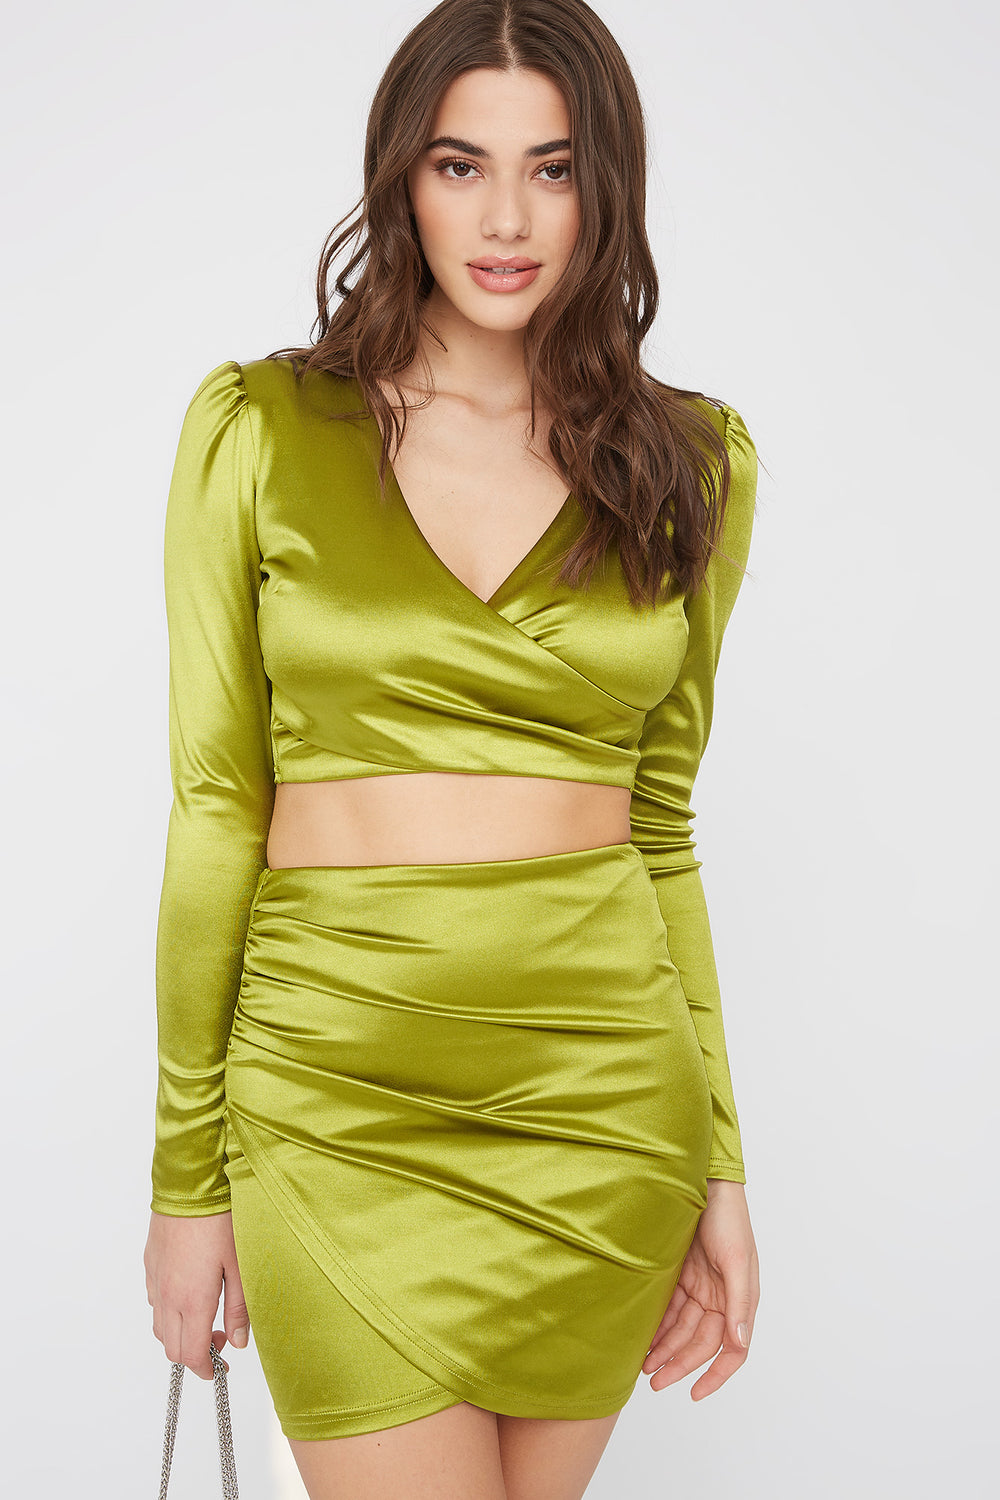 Satin Solid V-Neck Cropped Top Neon Green